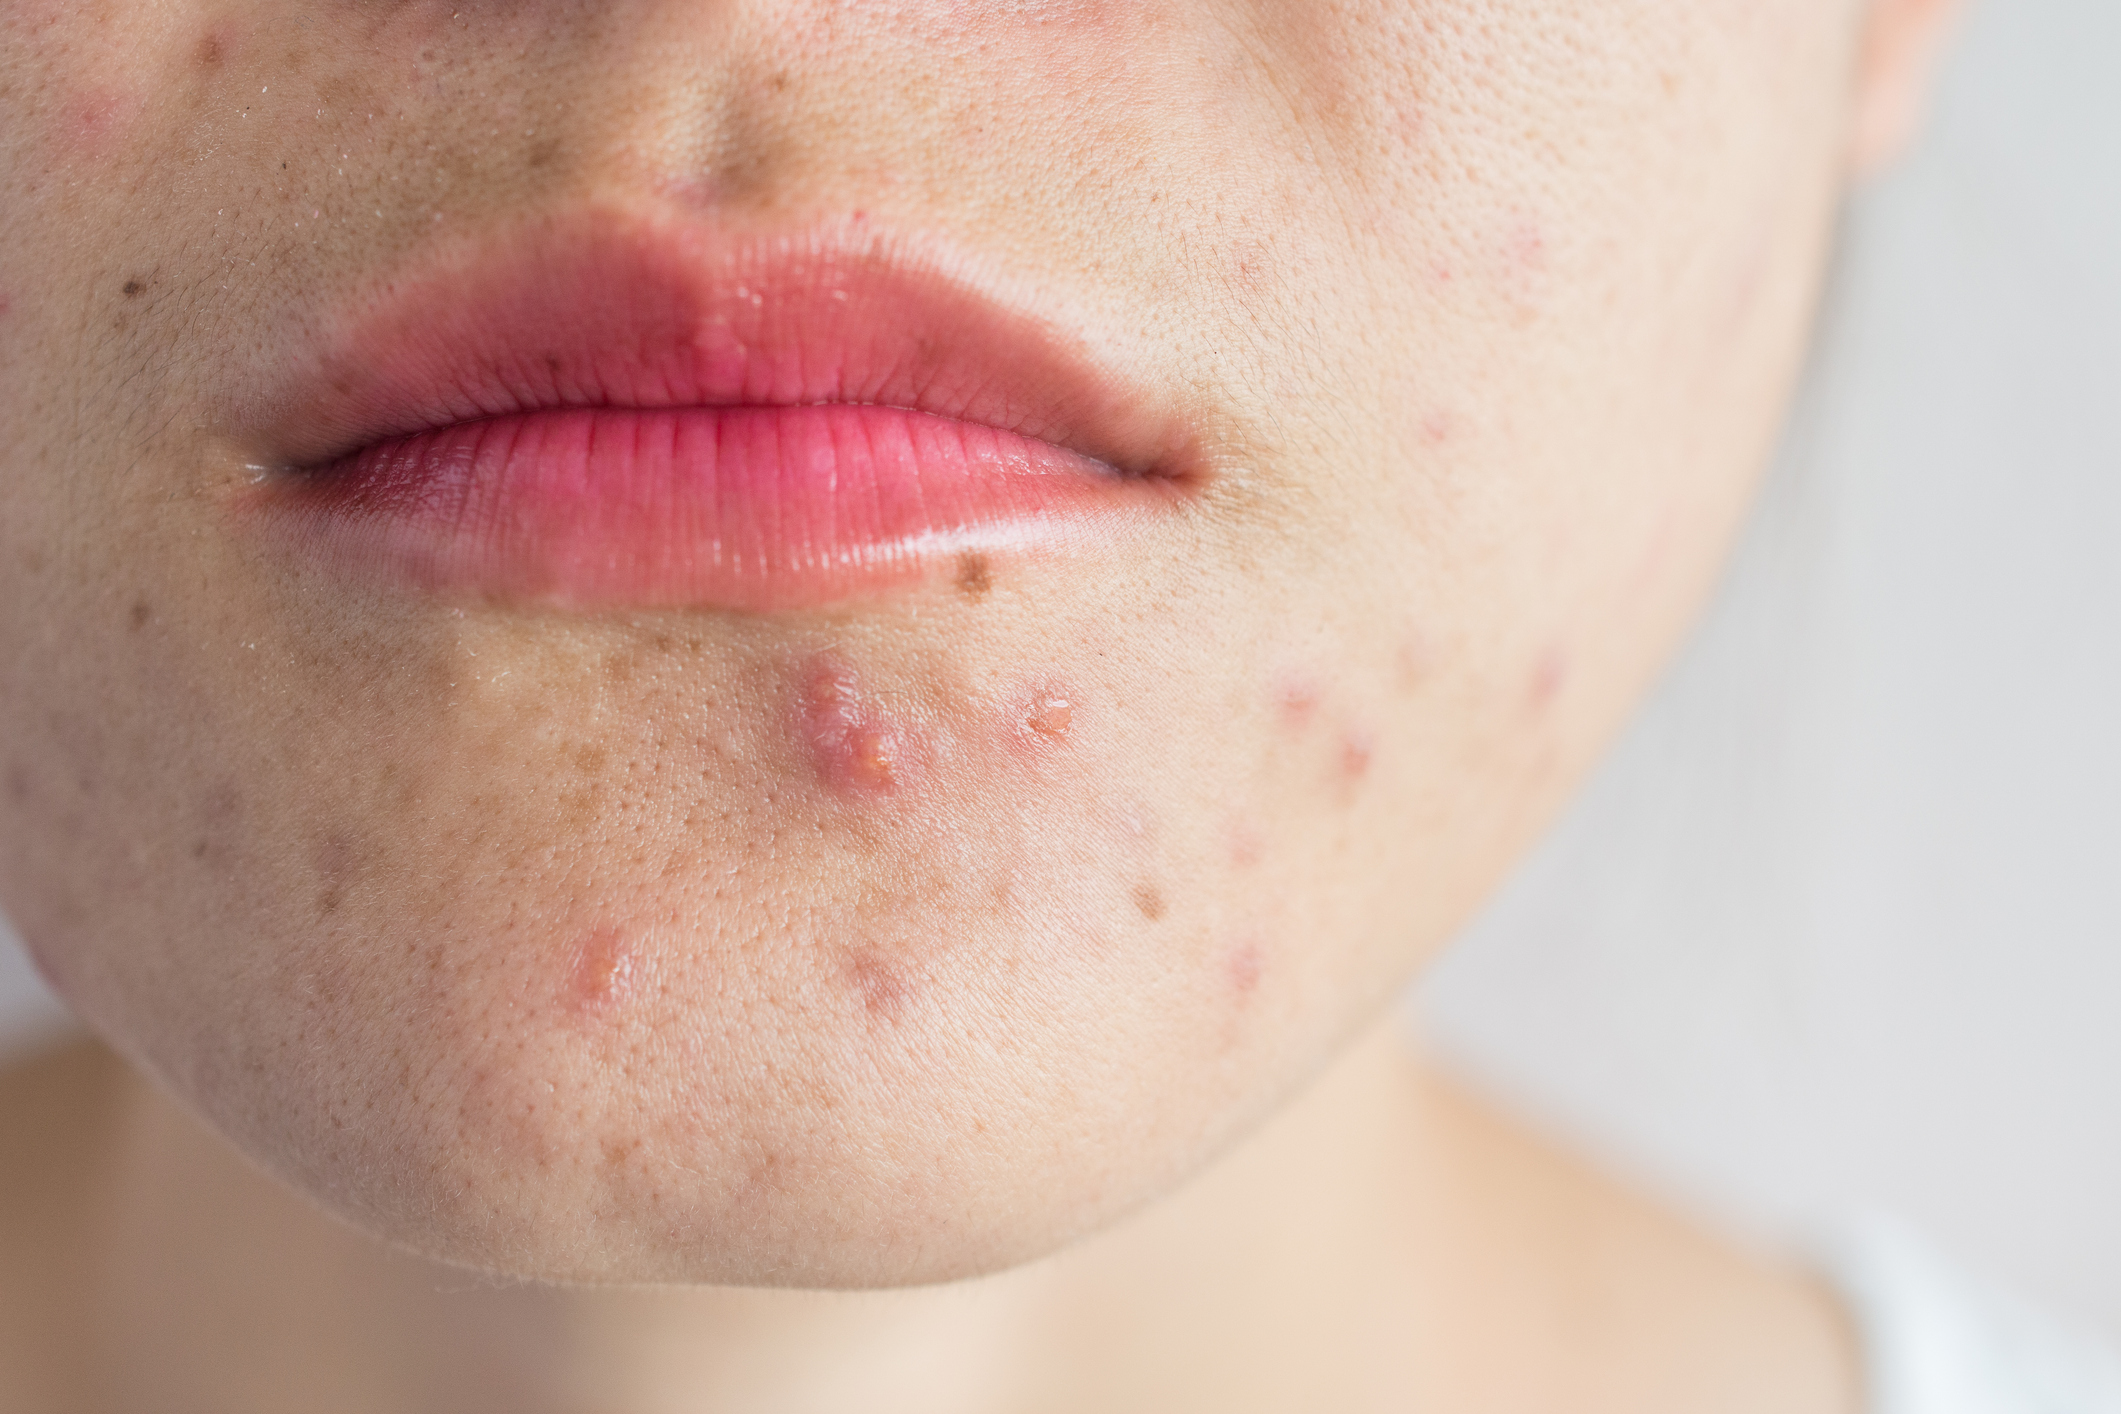 acne mouth face perioral dermatitis